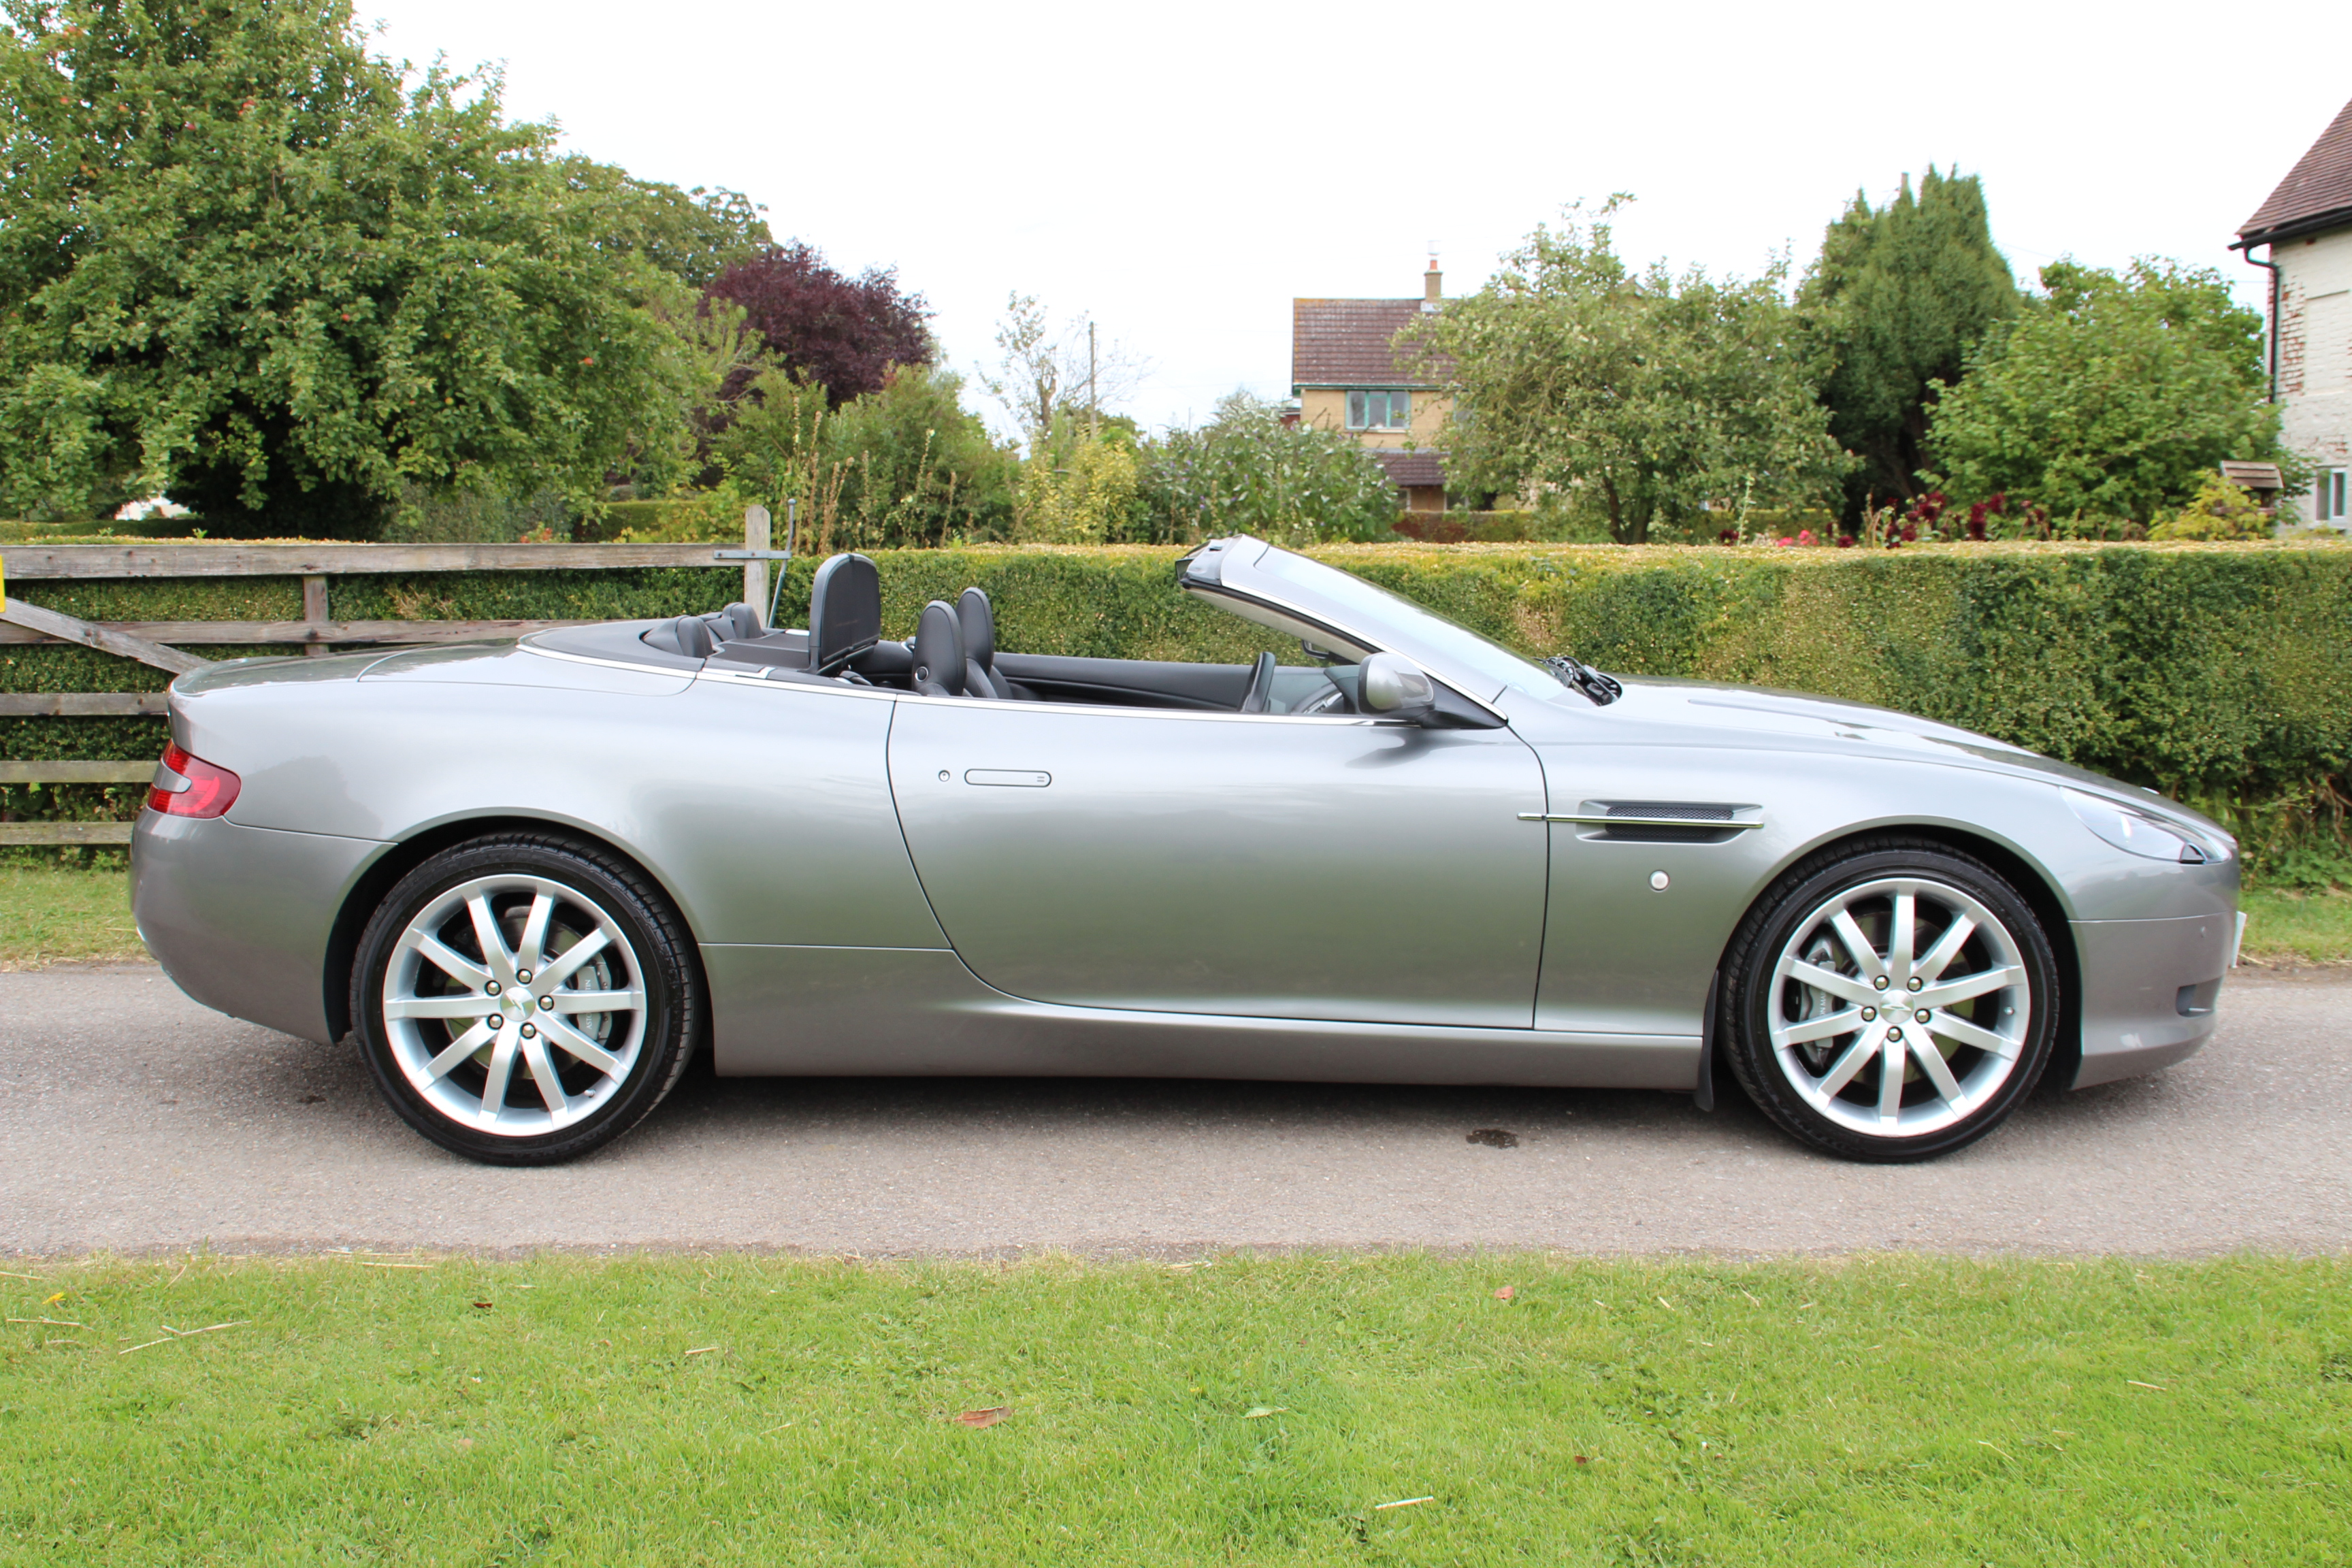 2007 Aston Martin DB9 photo - 1